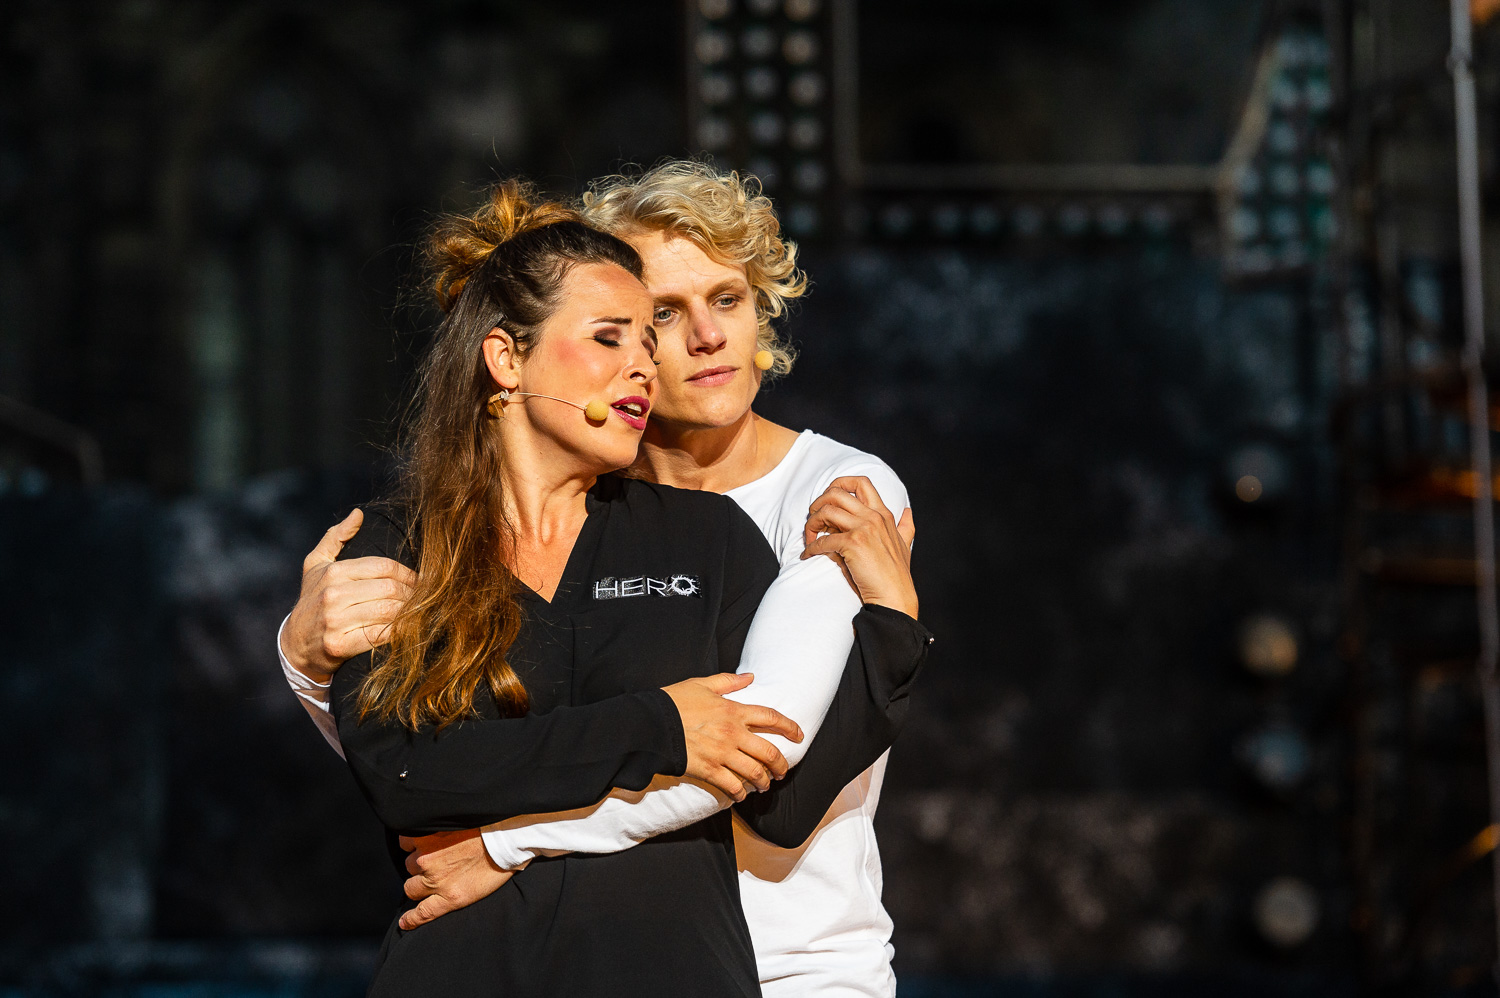 Magdeburg, 14.06.2018. Jesus Christ Superstar, Rock-Musical in zwei Akten. Gesangstexte von Tim Rice. Musik von Andrew Lloyd Webber. Deutsch von Anja Hauptmann. DomplatzOpenAir. Premiere, 15. 6. 2018.